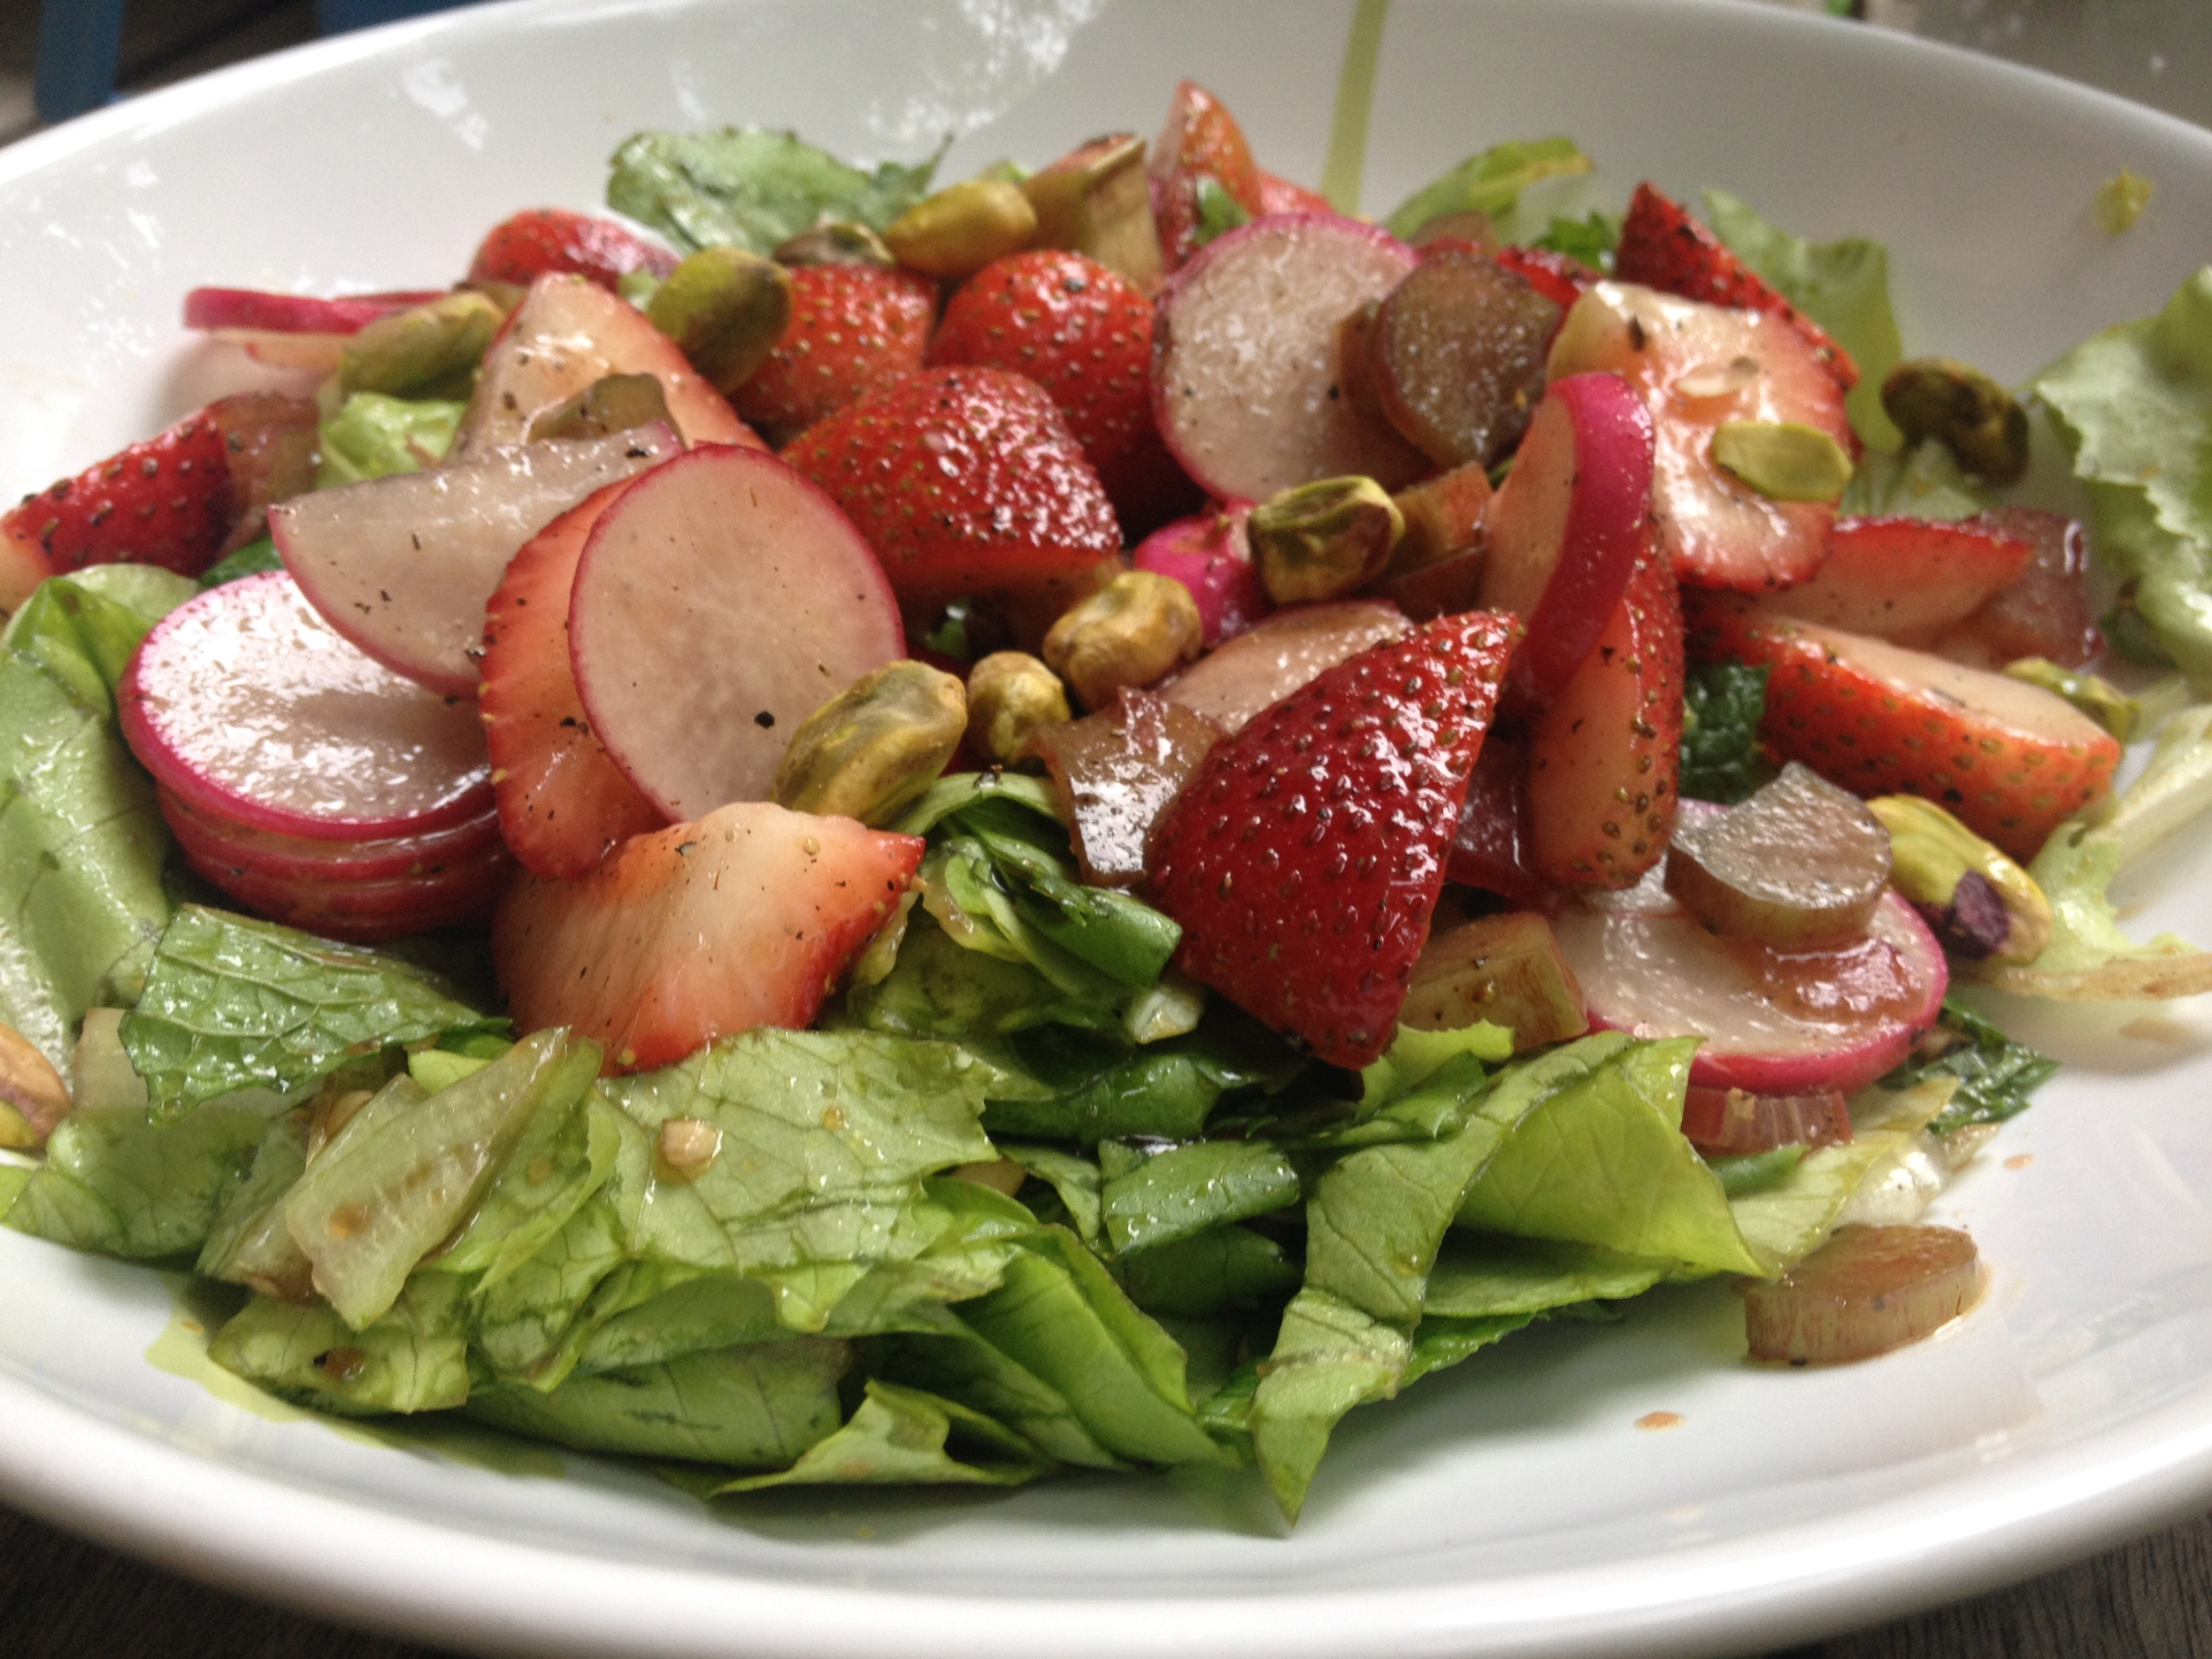 Louisa Shaifa's Radish, Rhubarb, and Strawberry Salad from  The New Persian Kitchen  features a balsamic vinaigrette with cracked black pepper.